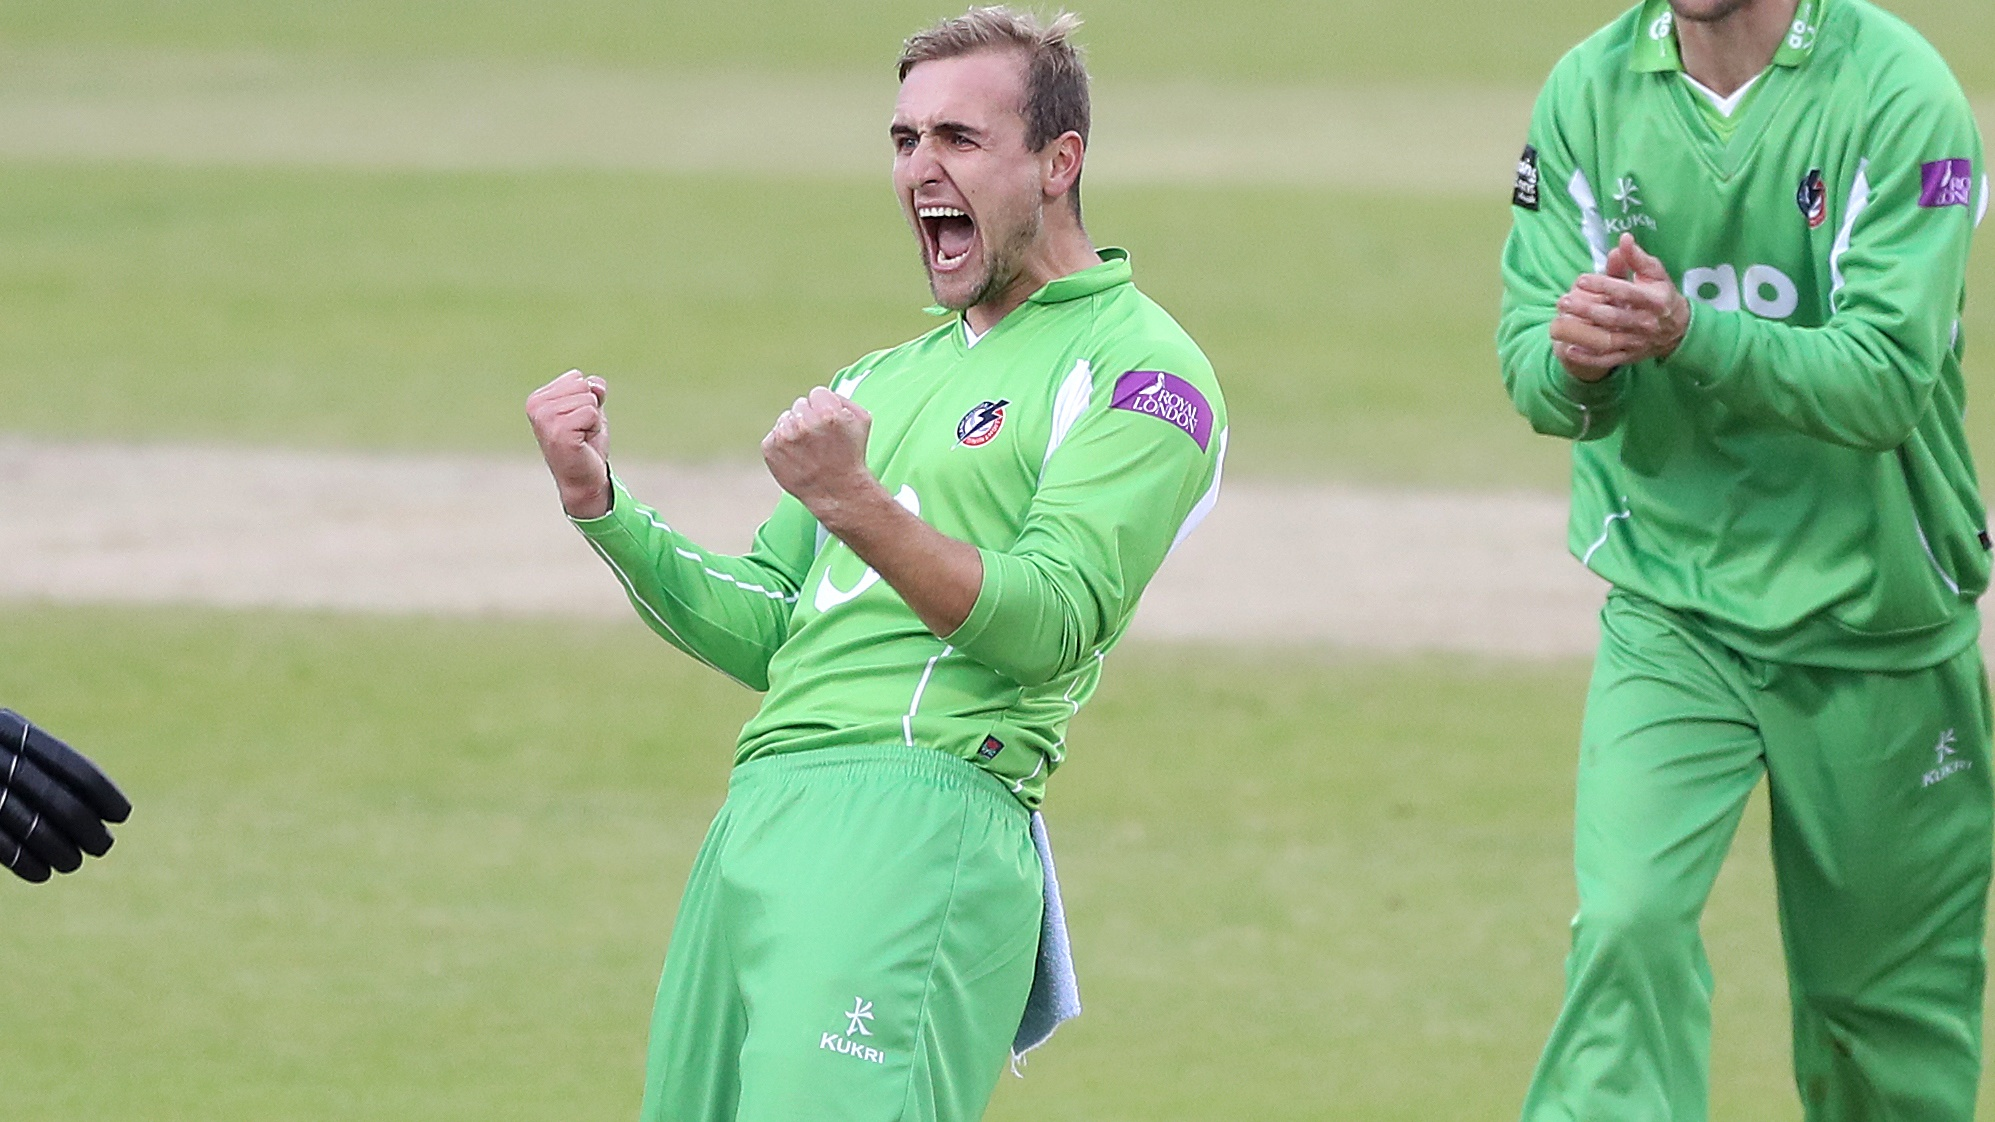 Uncapped England quintet called up for SA T20 series